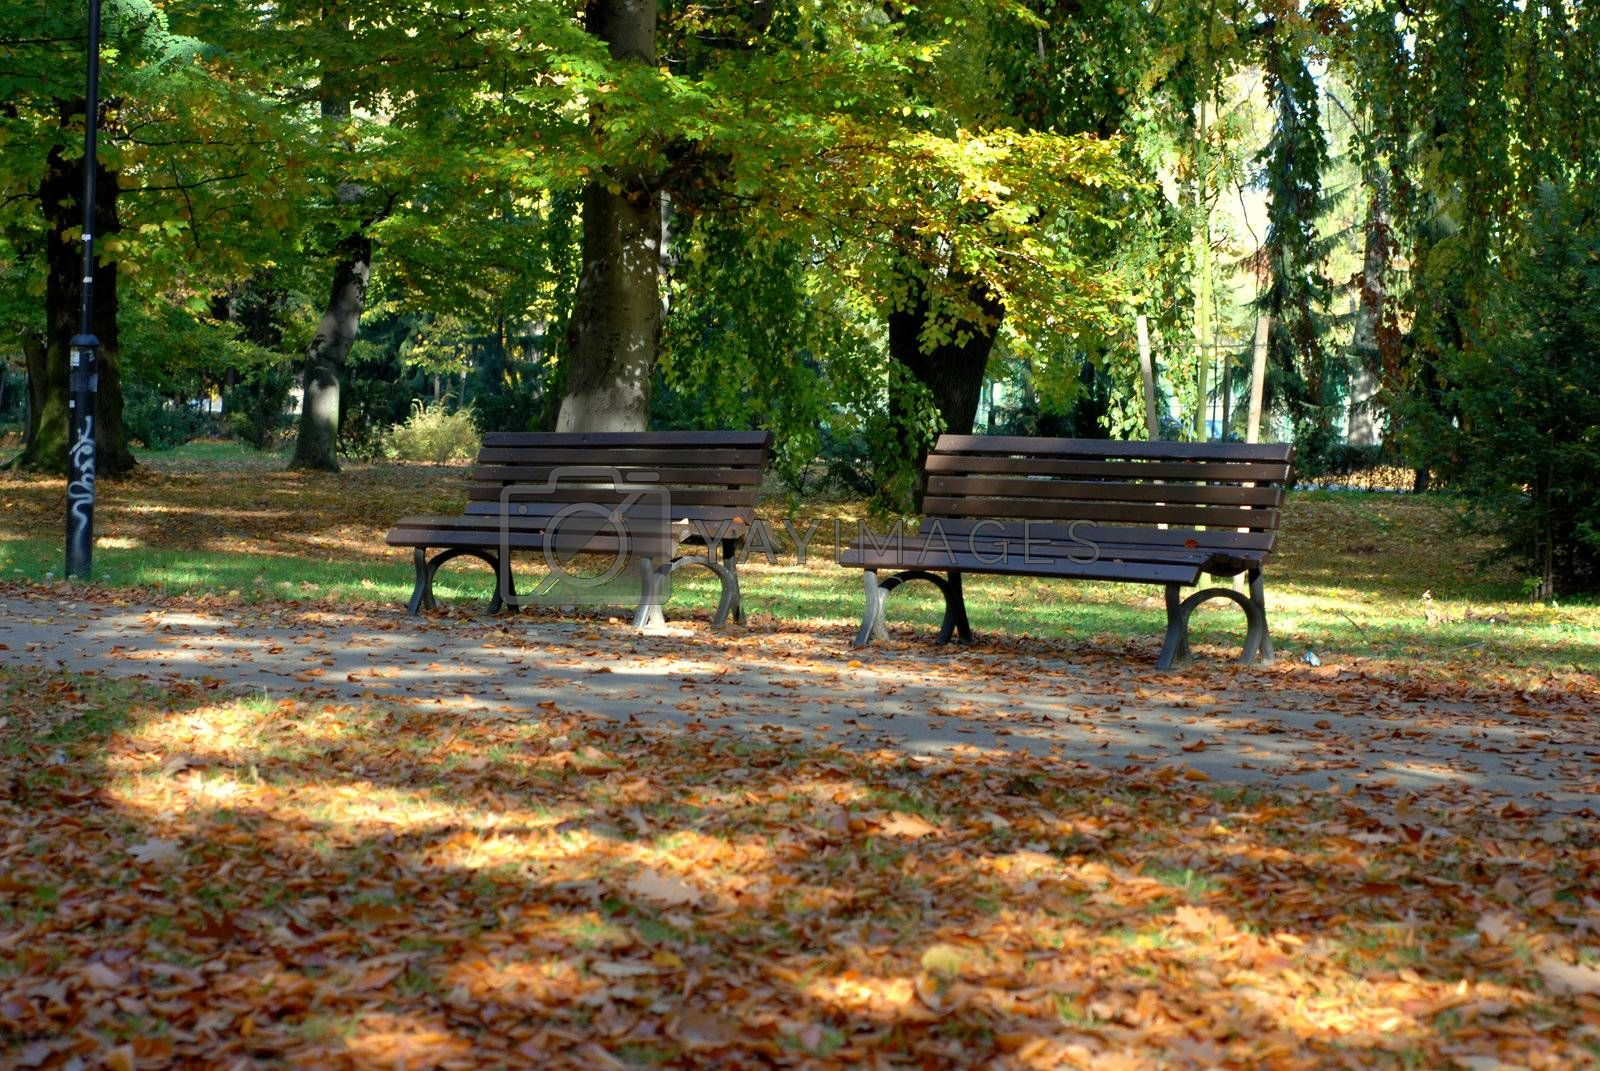 Royalty free image of Benches in the park, Autumn season. by wojciechkozlowski